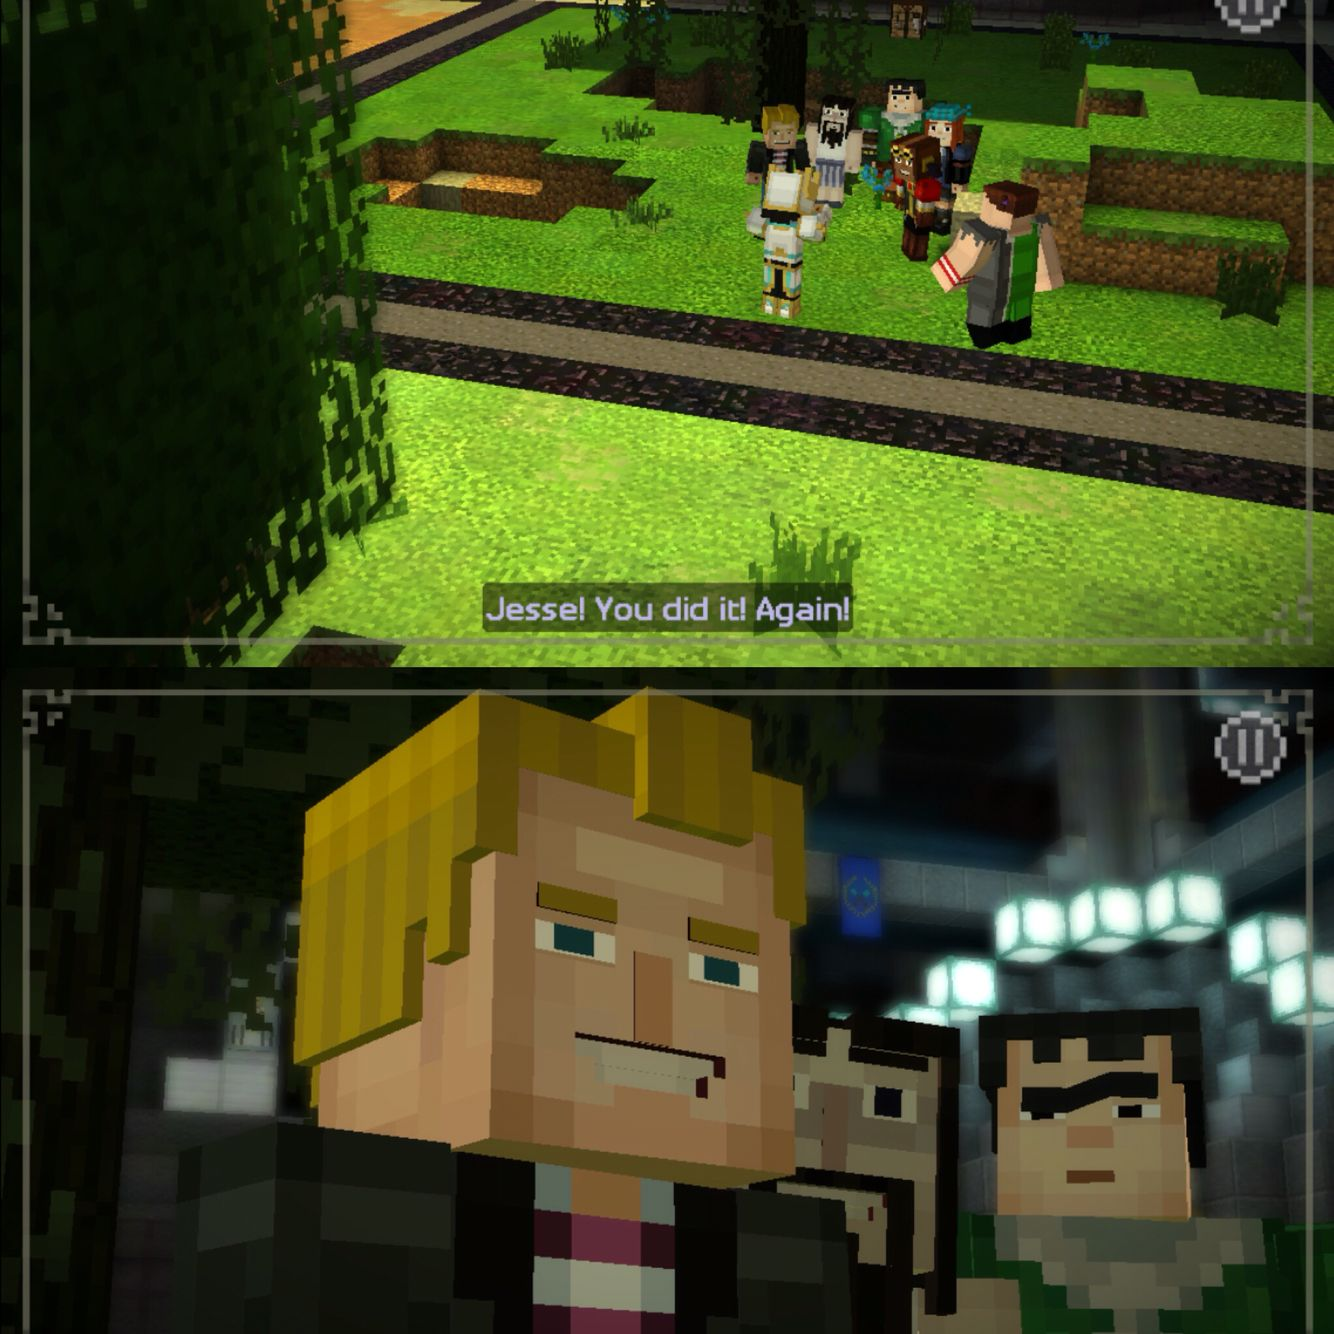 Minecraft Story Mode Episode 8 Look At That Flirty Face Tho Xd And Axel Be Like Whut Minecraft Memes Minecraft Funny